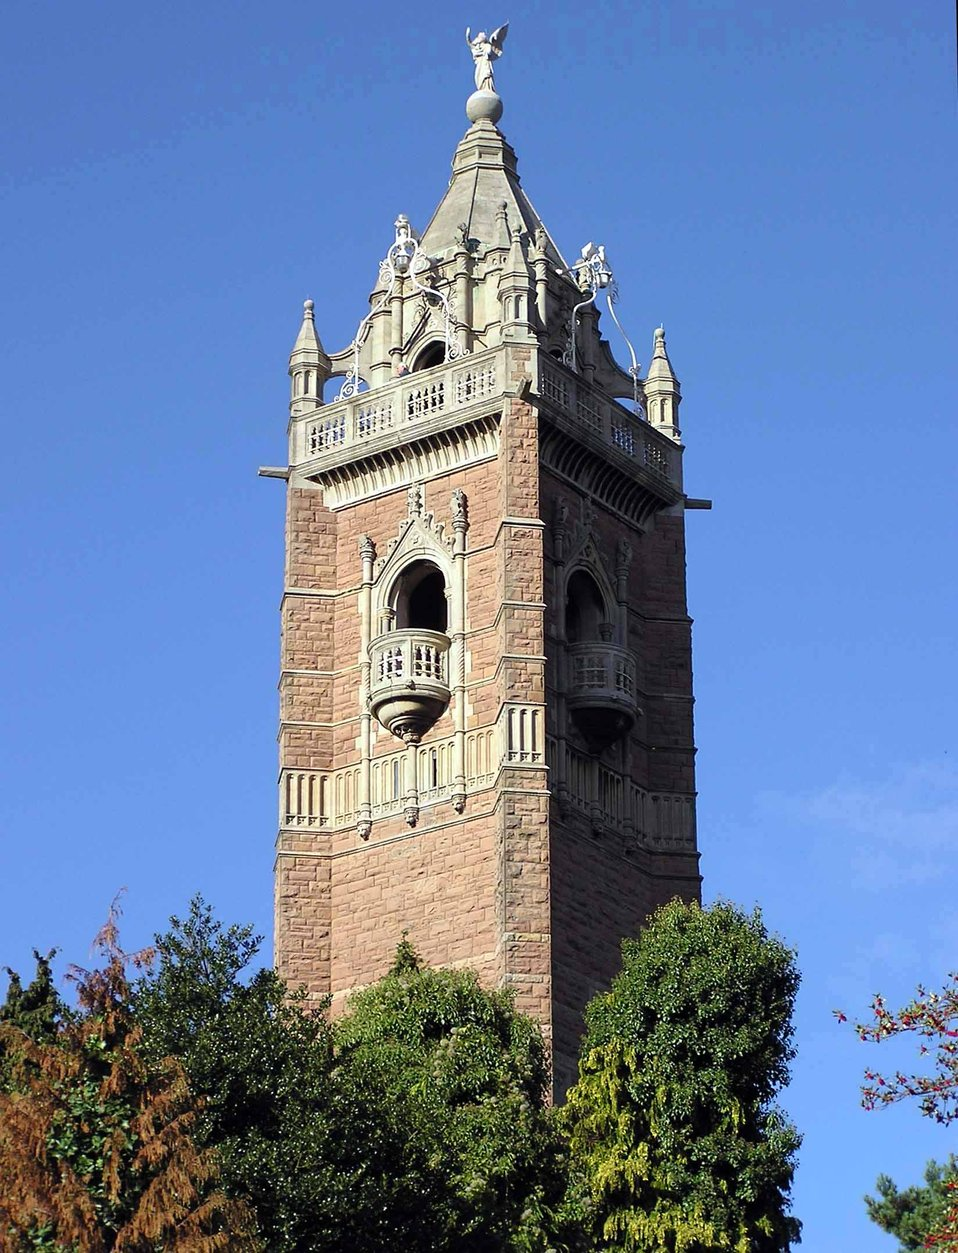 The Cabot Tower, Bristol, England.  The 105 foot high (32 metre) Cabot Tower on Brandon Hill is in the city centre of Bristol, England. The tower was opened in 1898 to commemorate the 400th anniversary of explorer John Cabot's voyage to America in 1497